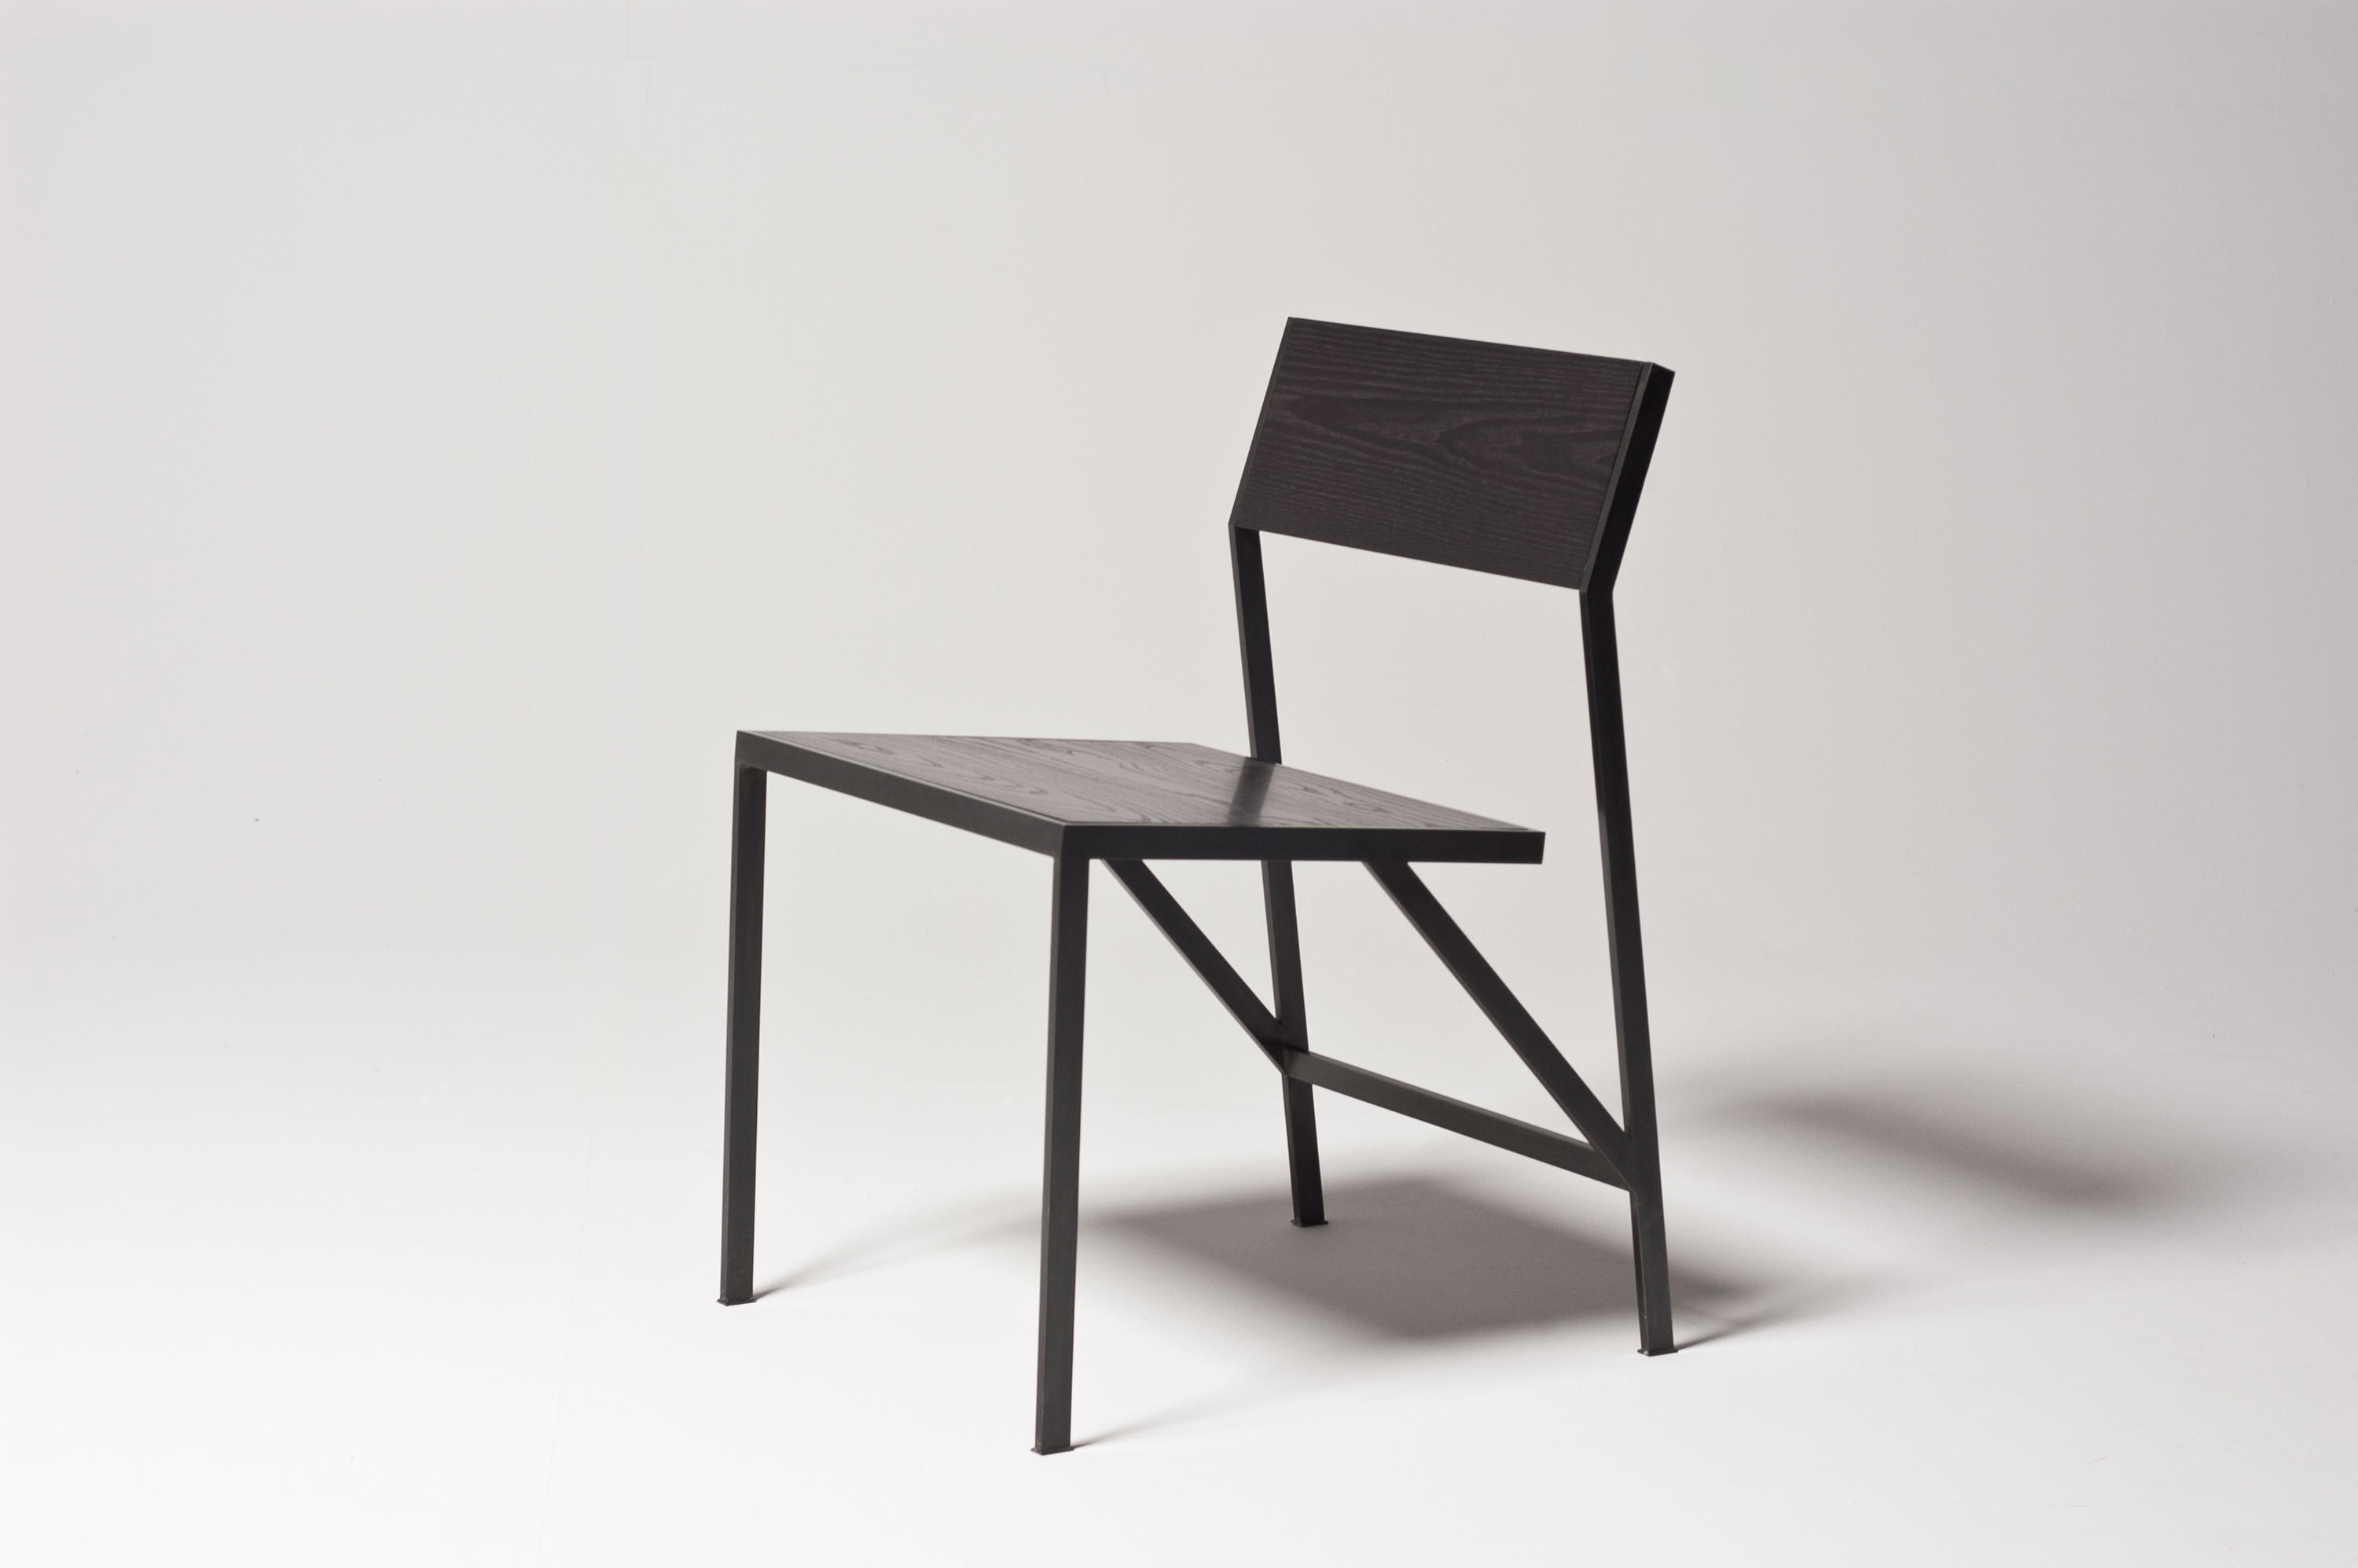 Noir Dining Chair by Farrah Sit | Chairs ... & NOIR DINING CHAIR - Chairs from Farrah Sit | Architonic